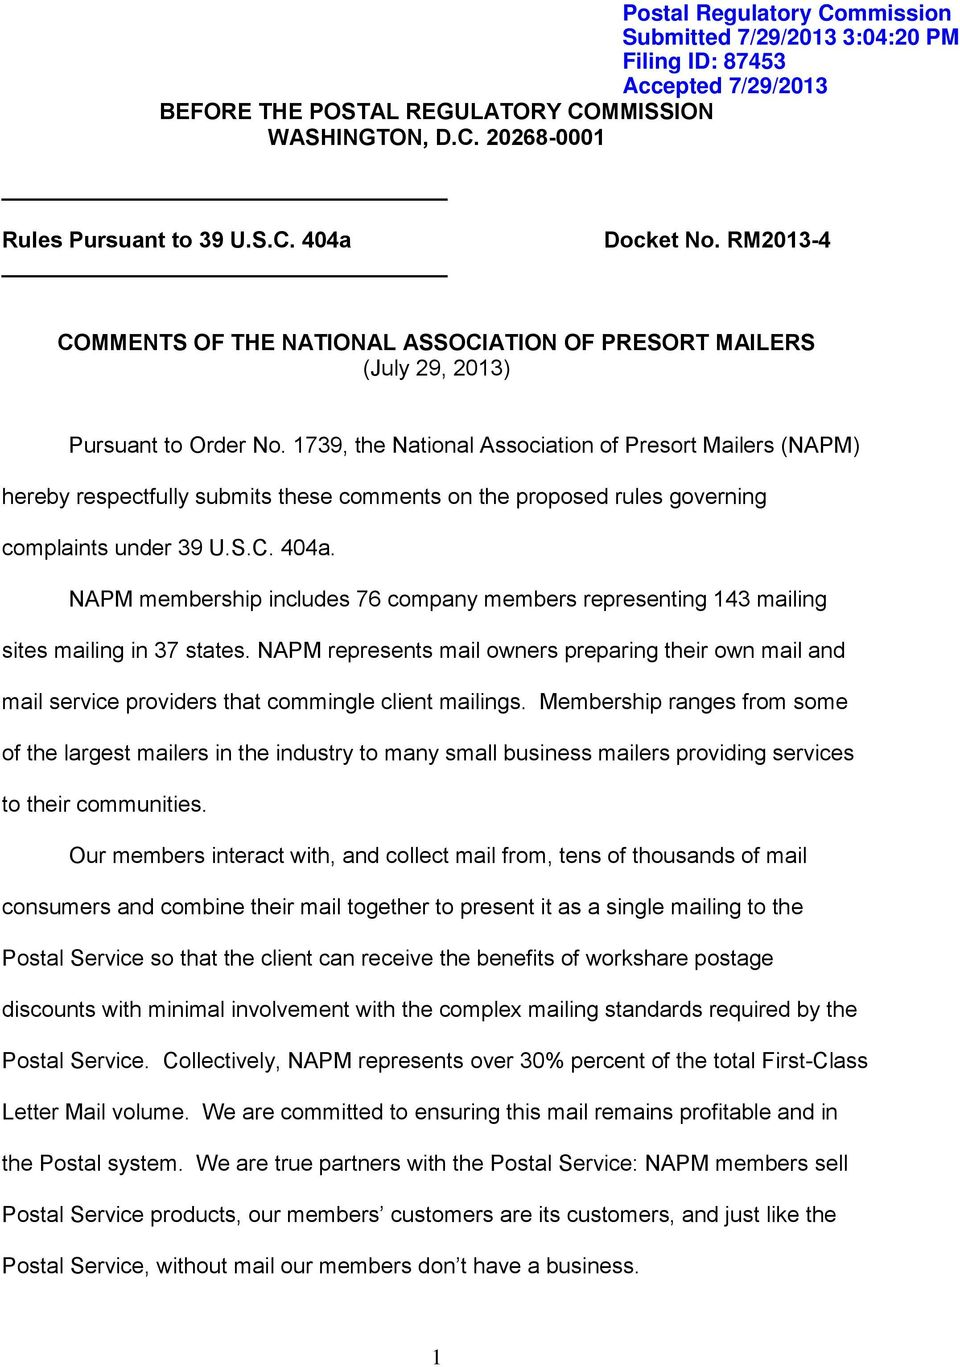 1739, the National Association of Presort Mailers (NAPM) hereby respectfully submits these comments on the proposed rules governing complaints under 39 U.S.C. 404a.